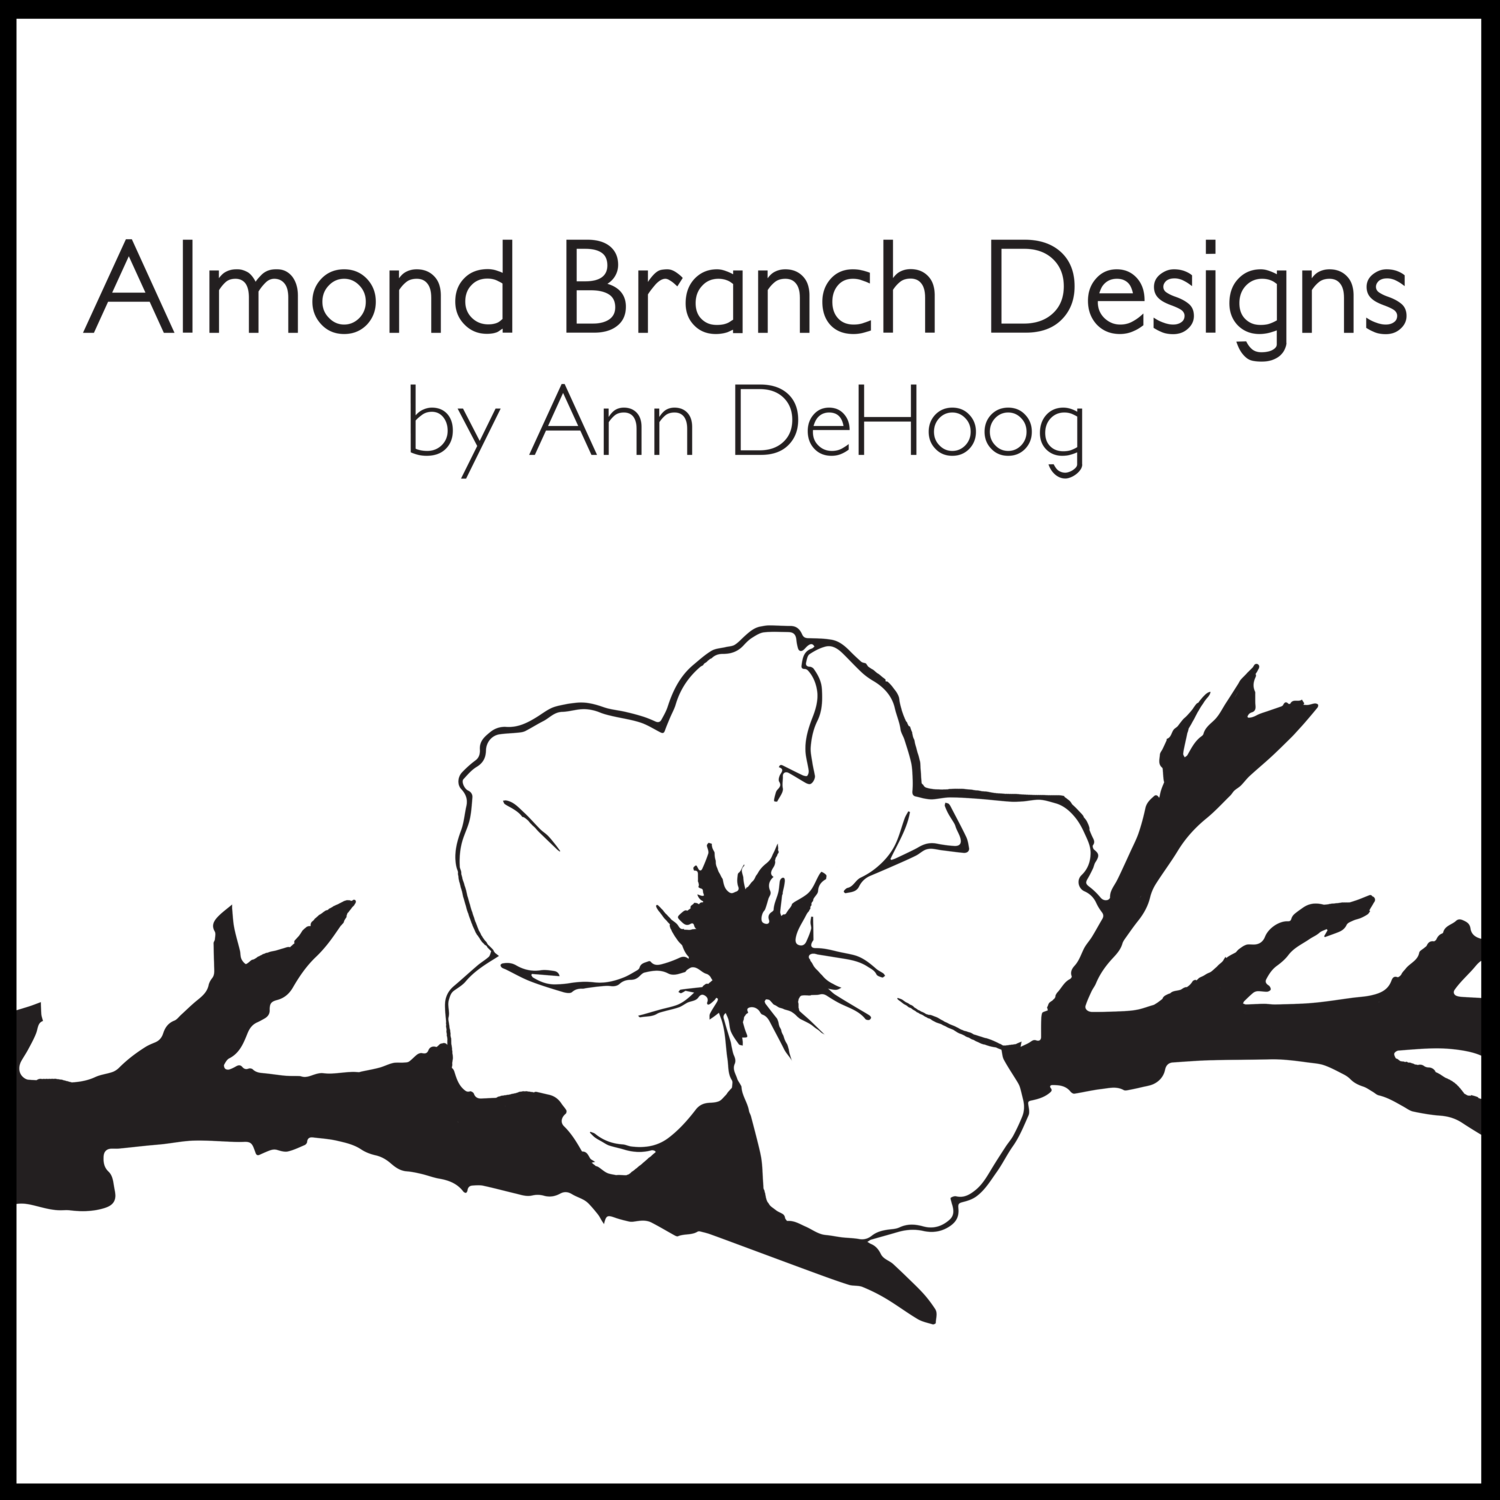 Almond Branch Designs by Ann DeHoog